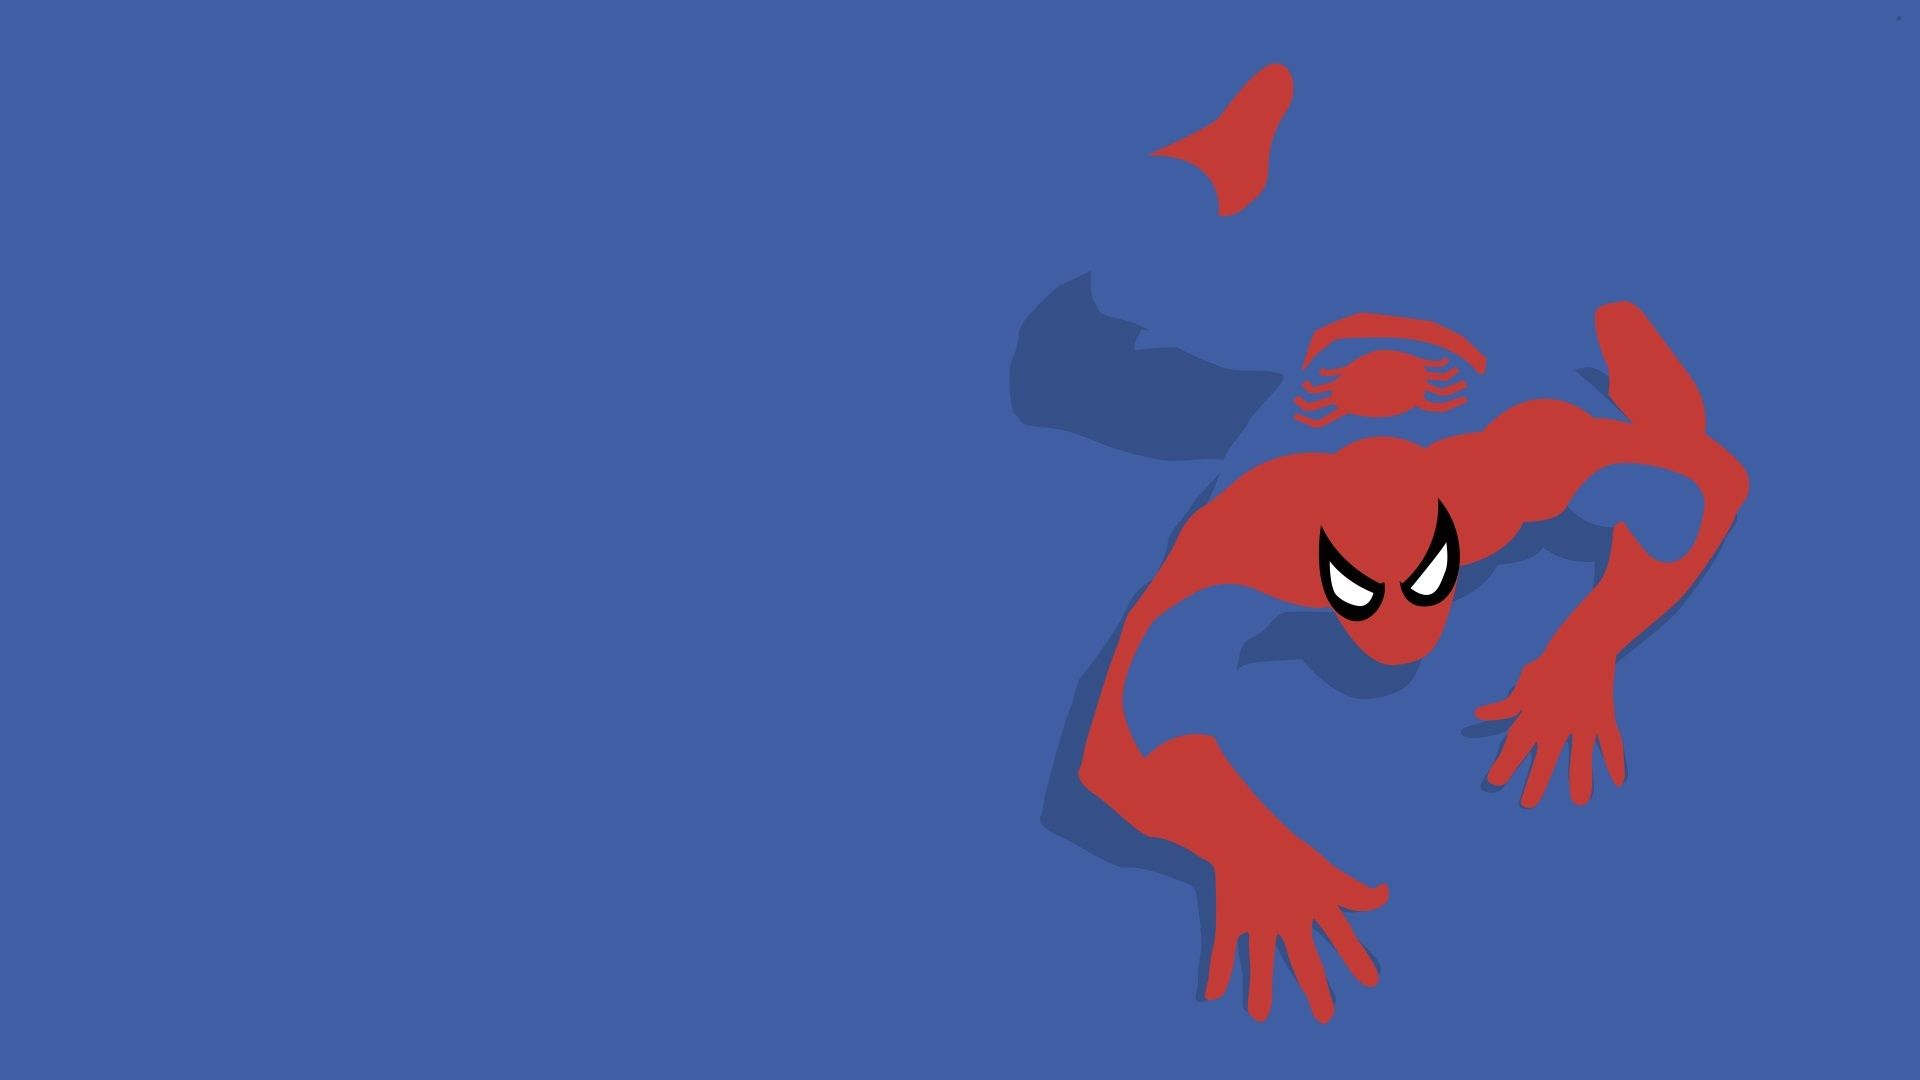 Minimalist Marvel Wallpaper Wallpapersafari Marvel 4k Wallpaper Superhero Wallpaper Marvel Wallpaper